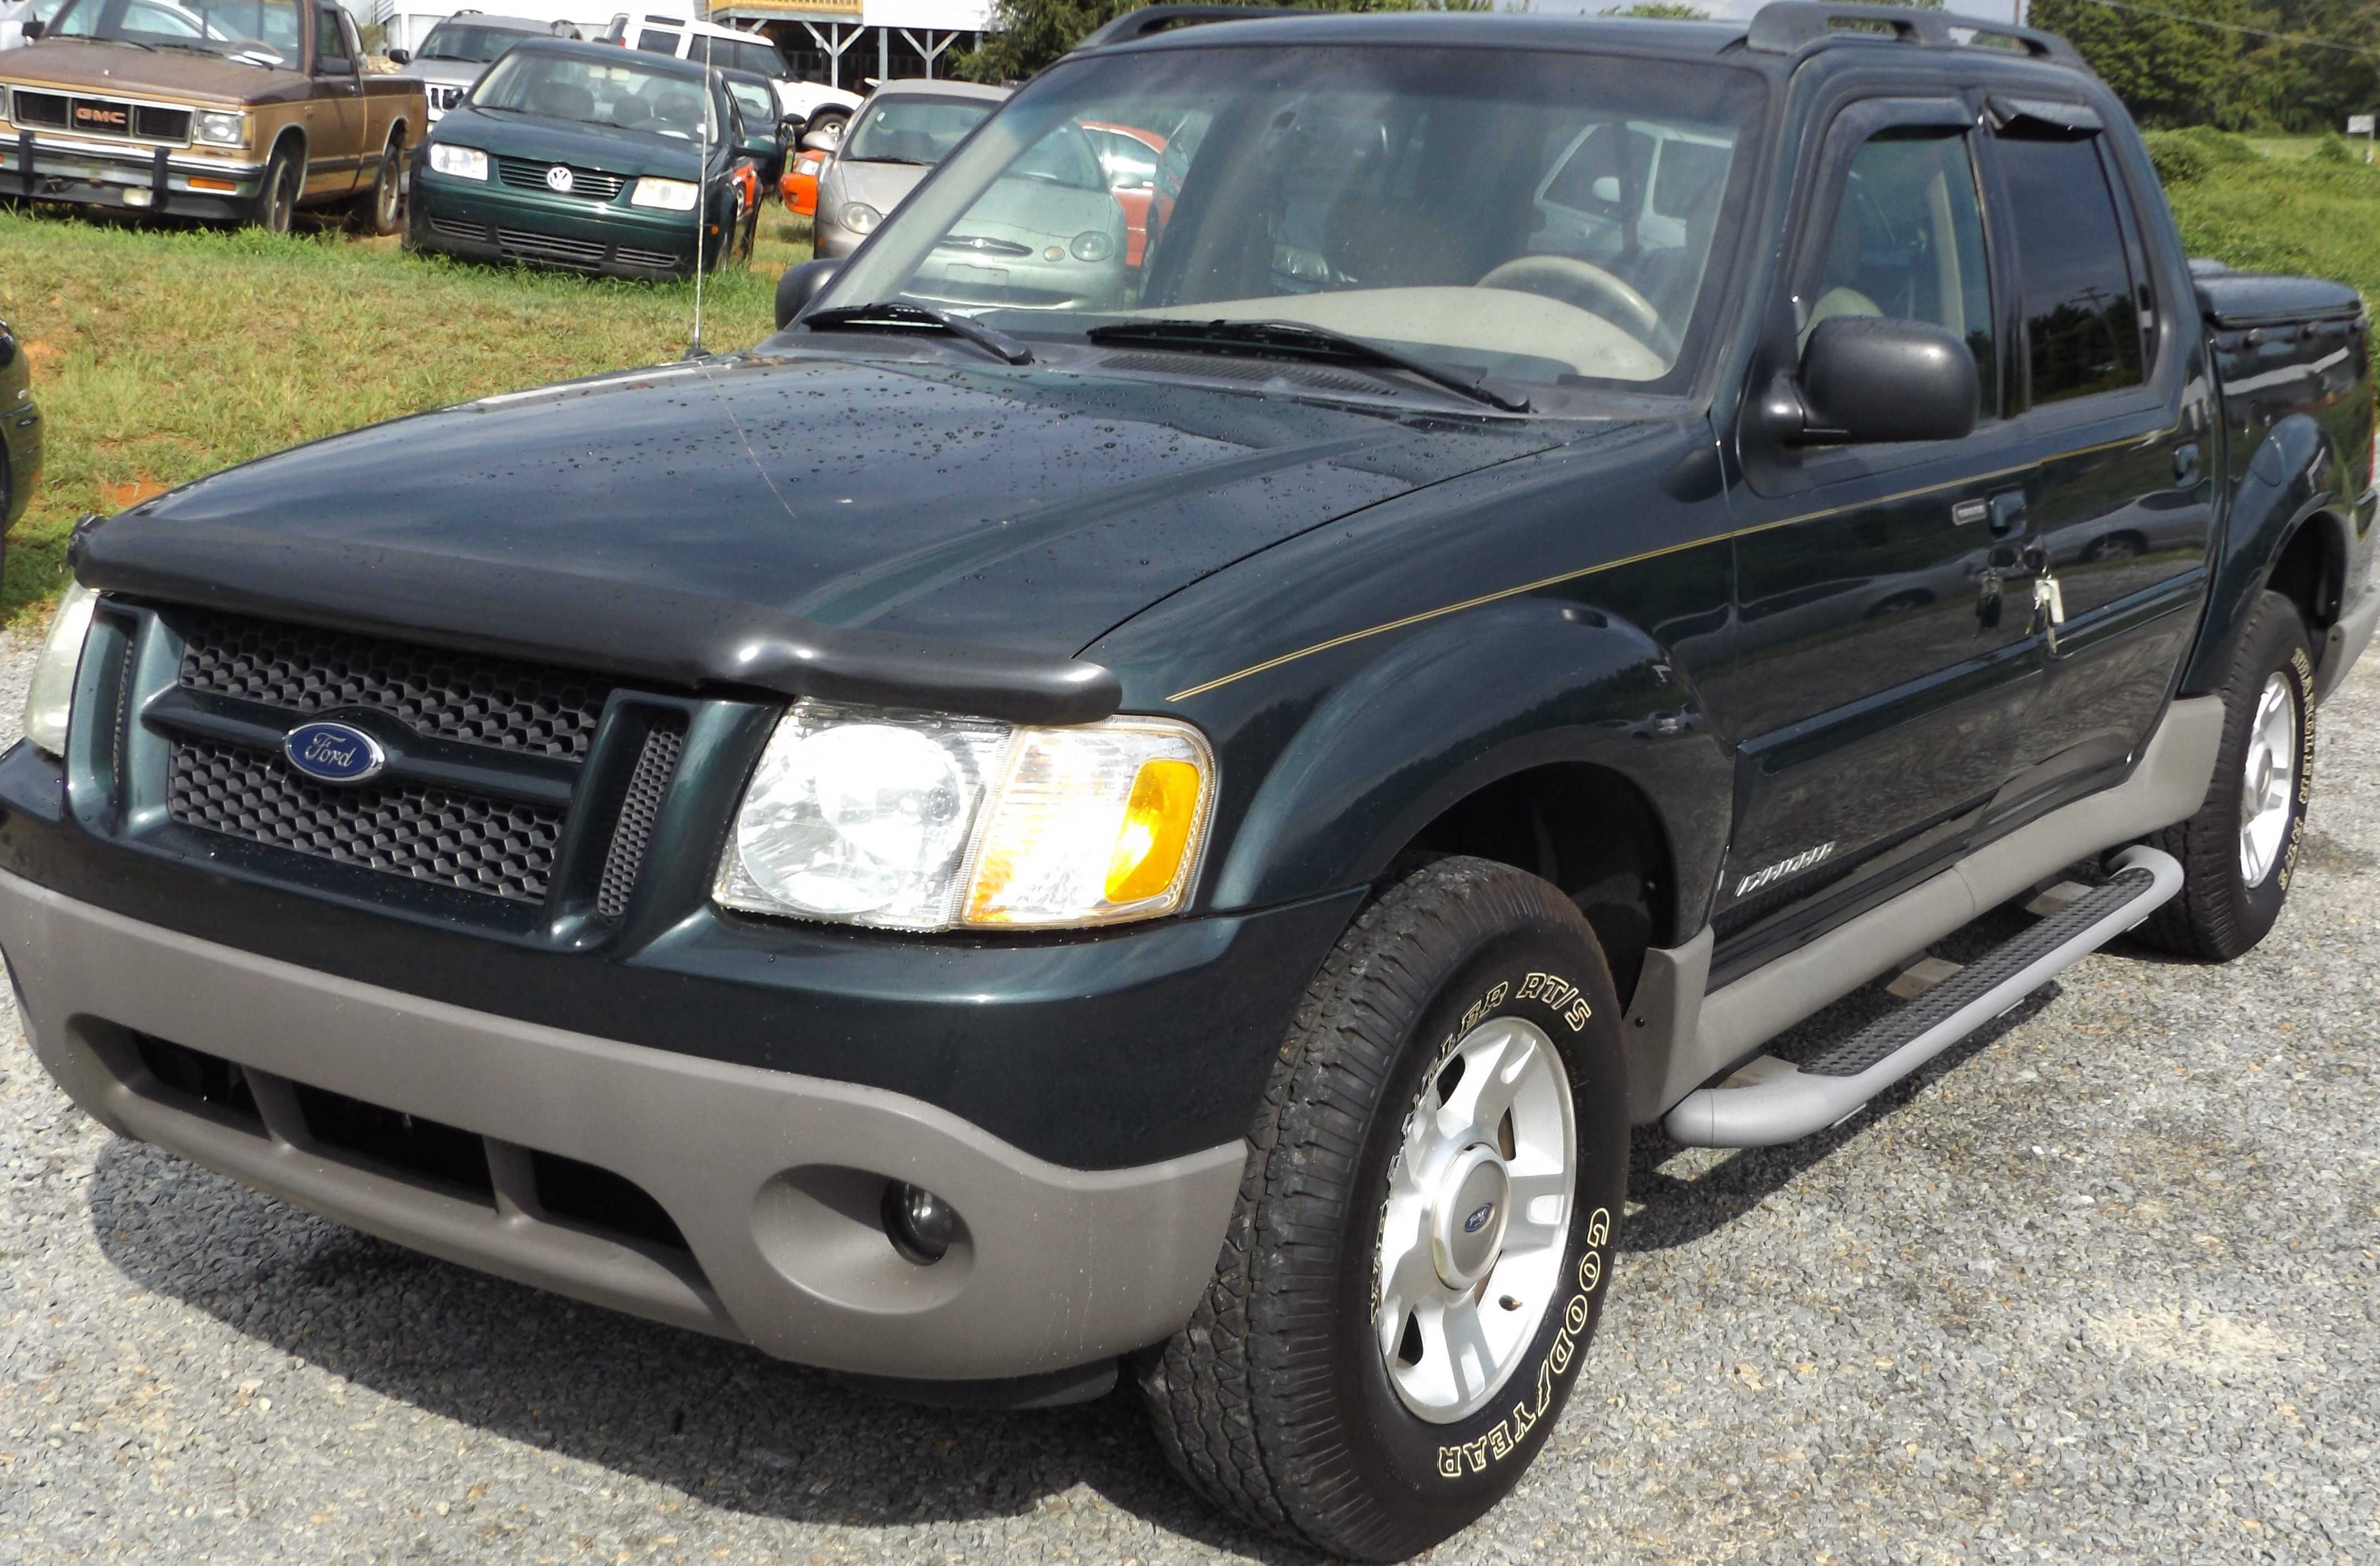 2002 Ford Explorer Sport Trac for $4,100 00  Golden Auto Sales